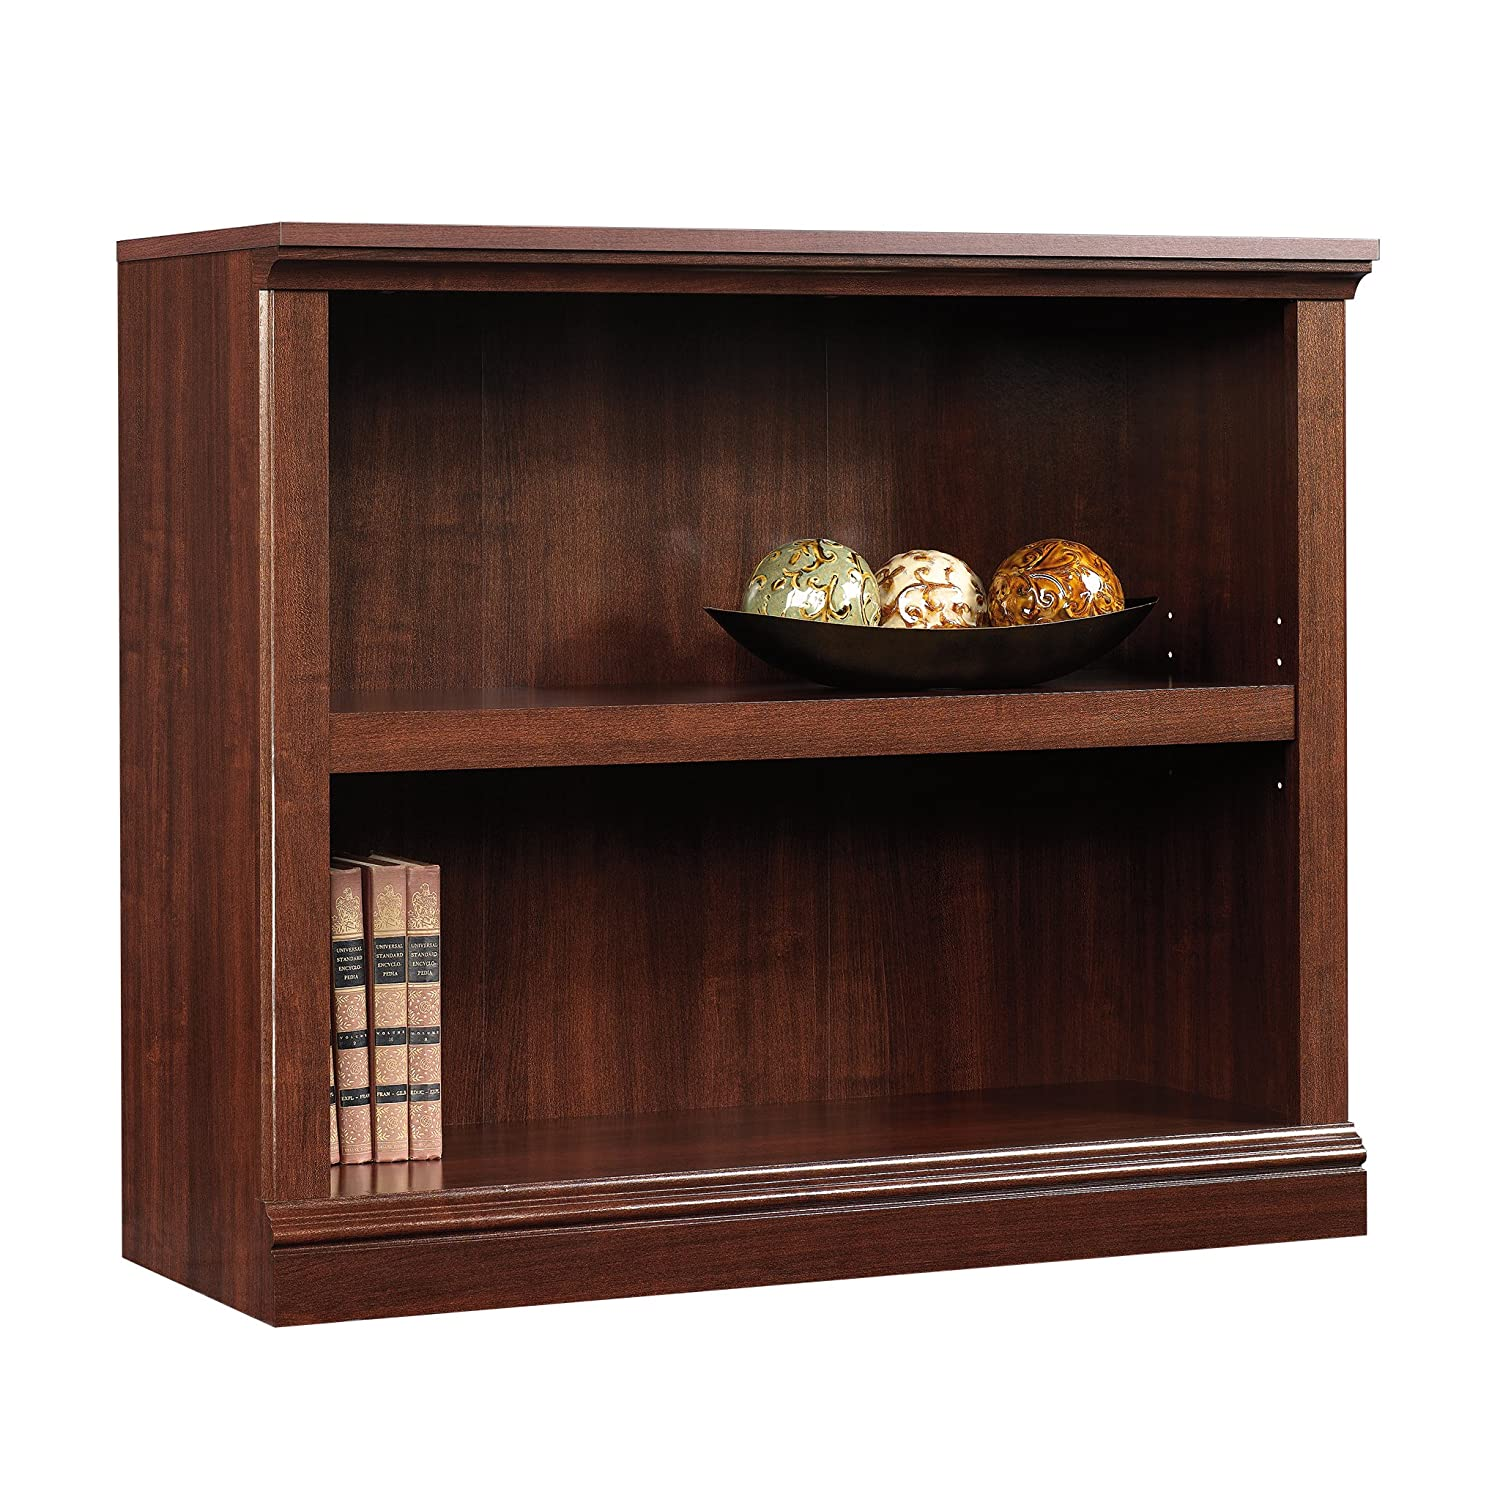 itm cube unit result for bookcase shelf image shelves responsive wood display mobile wooden shelving images storage